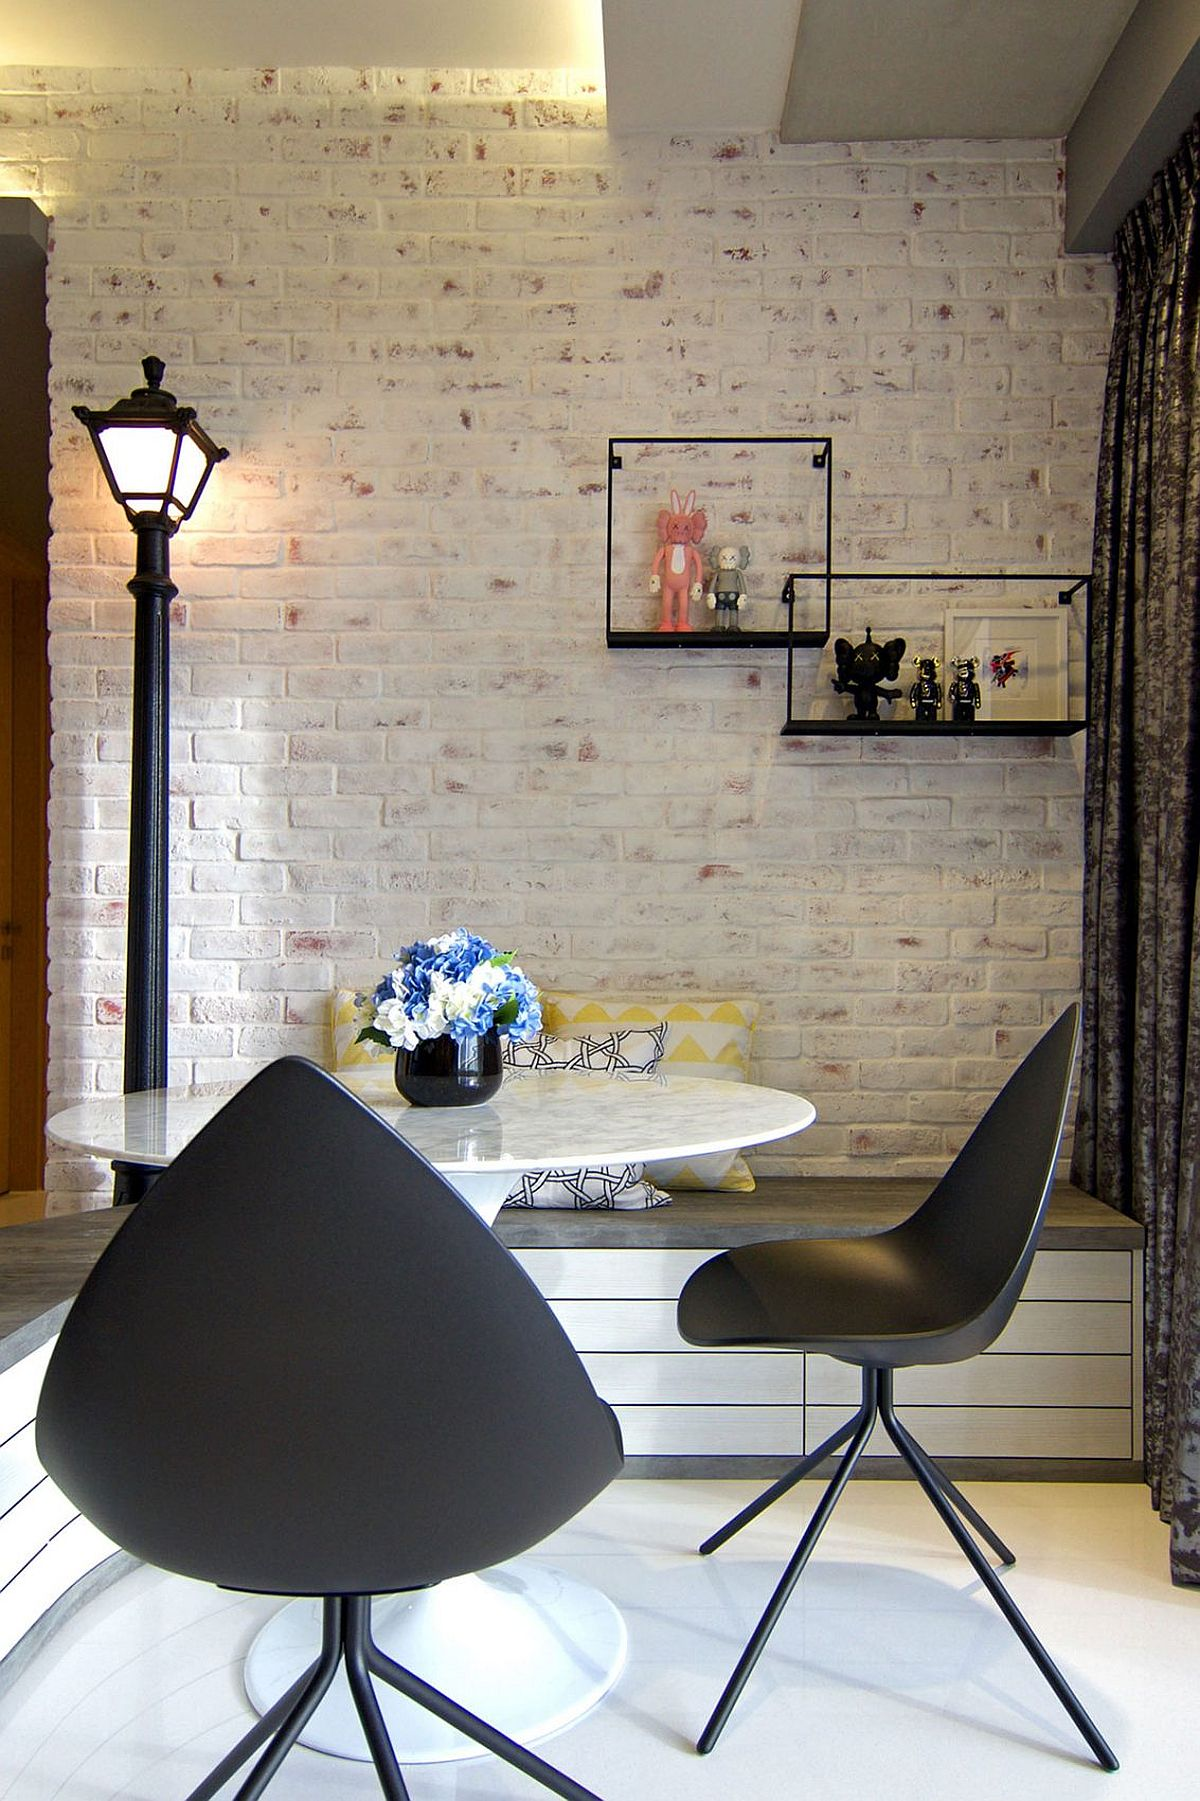 Framed toys bring fun to the cool dining space